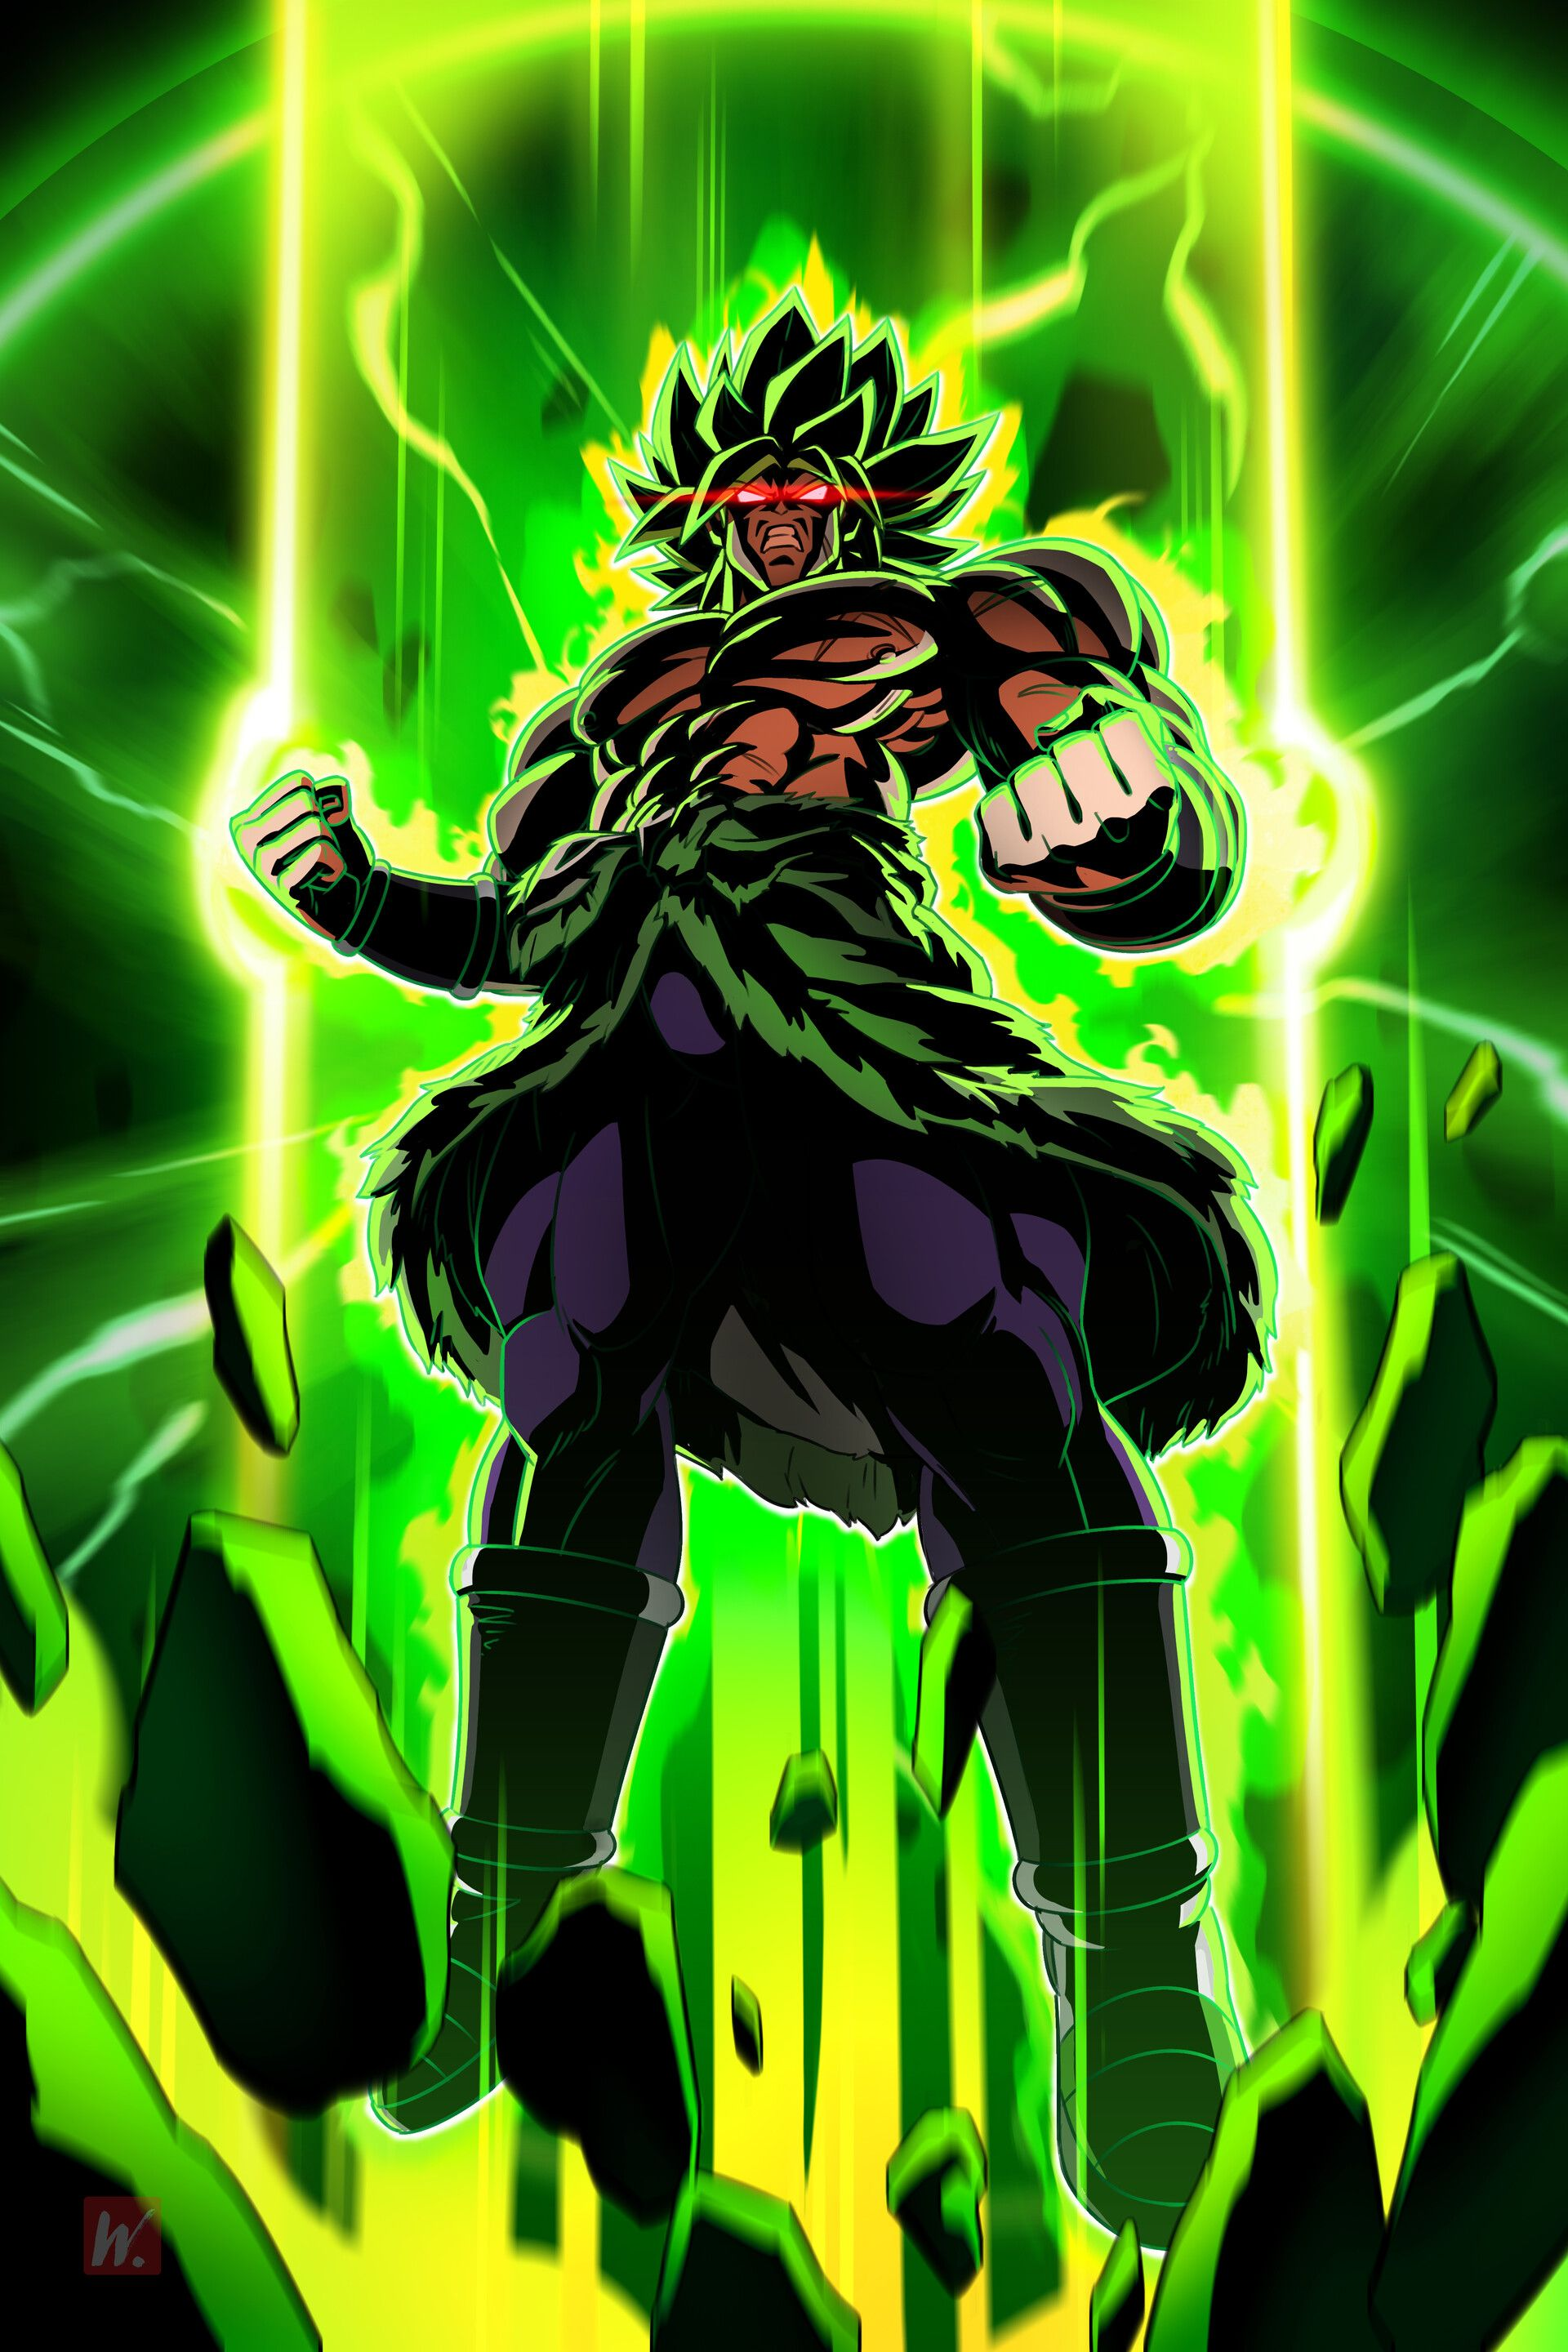 Artstation Broly William Liu Anime Dragon Ball Super Dragon Ball Artwork Anime Dragon Ball